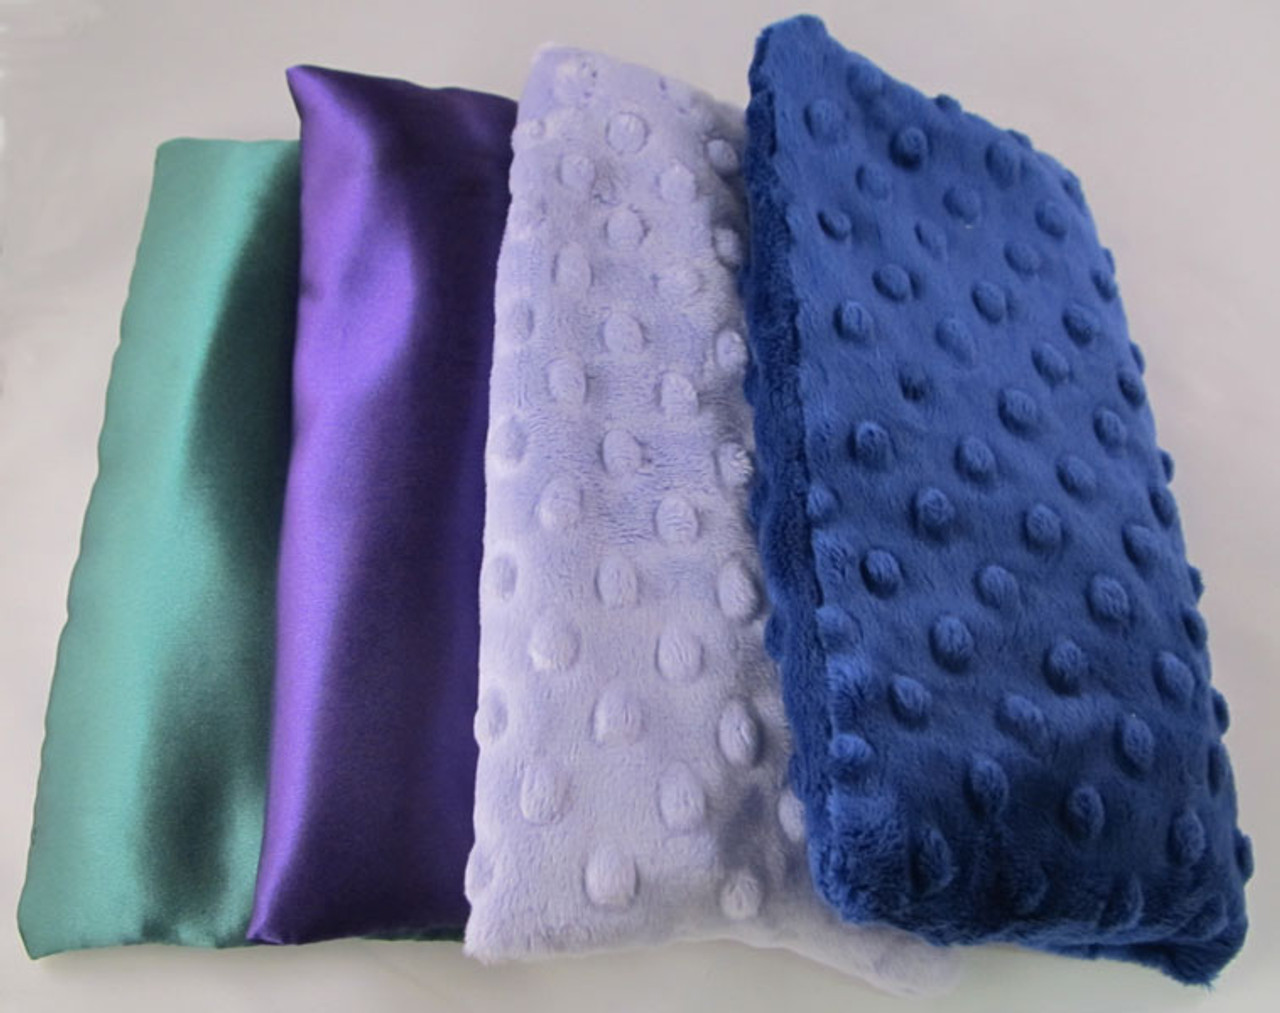 Sleepy Time Pillows - Lavender Throw Pillow Available in Green Satin, Purple Satin, Purple or Navy Oh-So-Soft Dot.